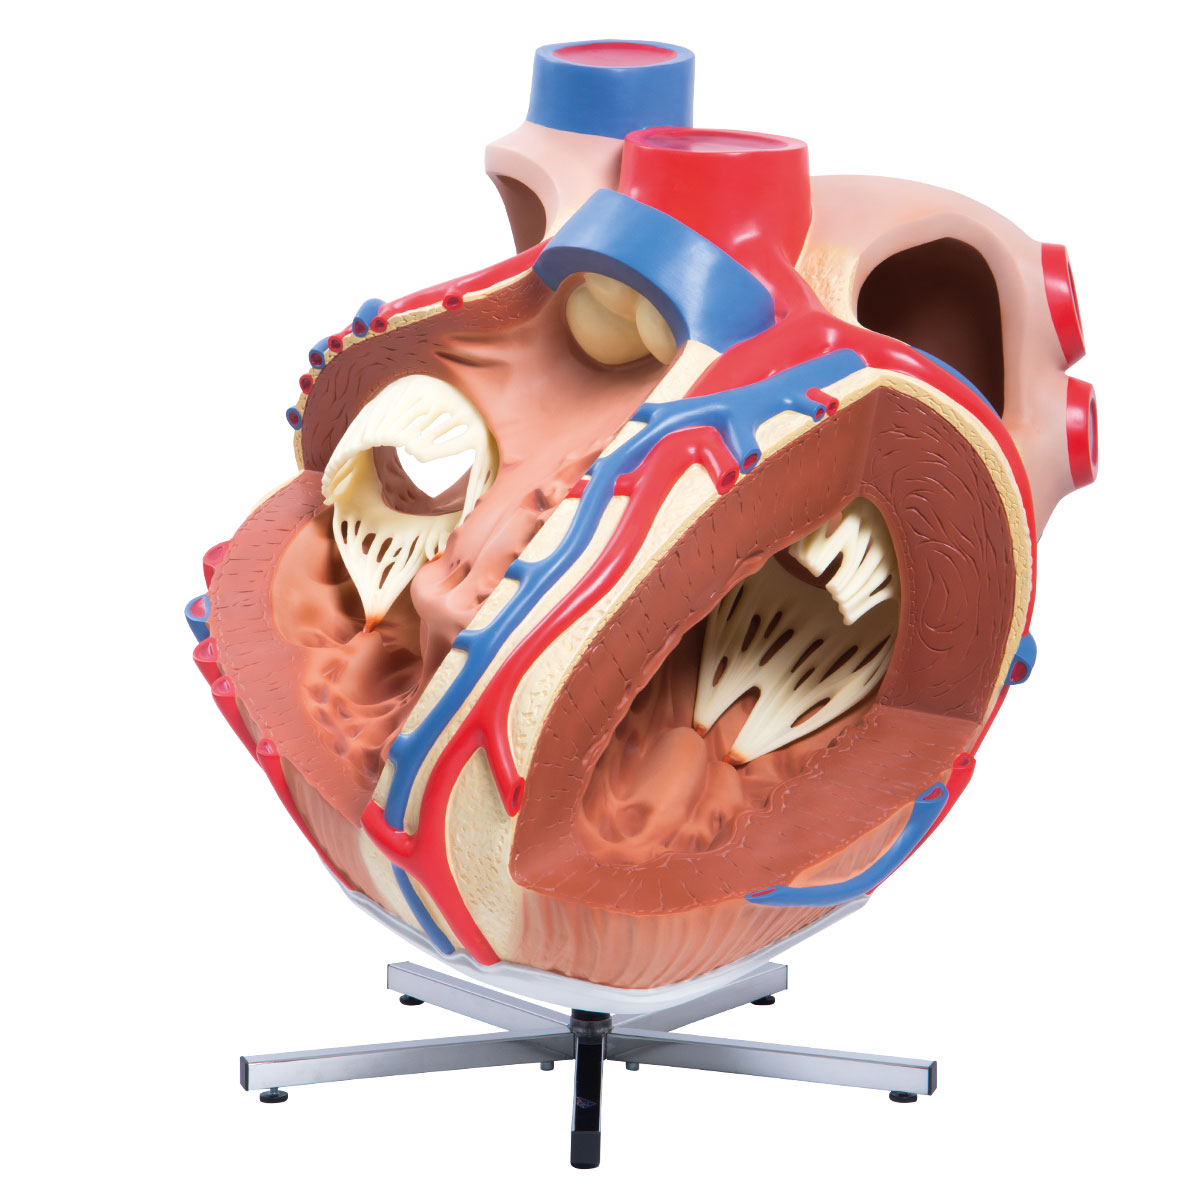 Anatomical Heart Model - Anatomy of the Heart - Giant Heart Model ...